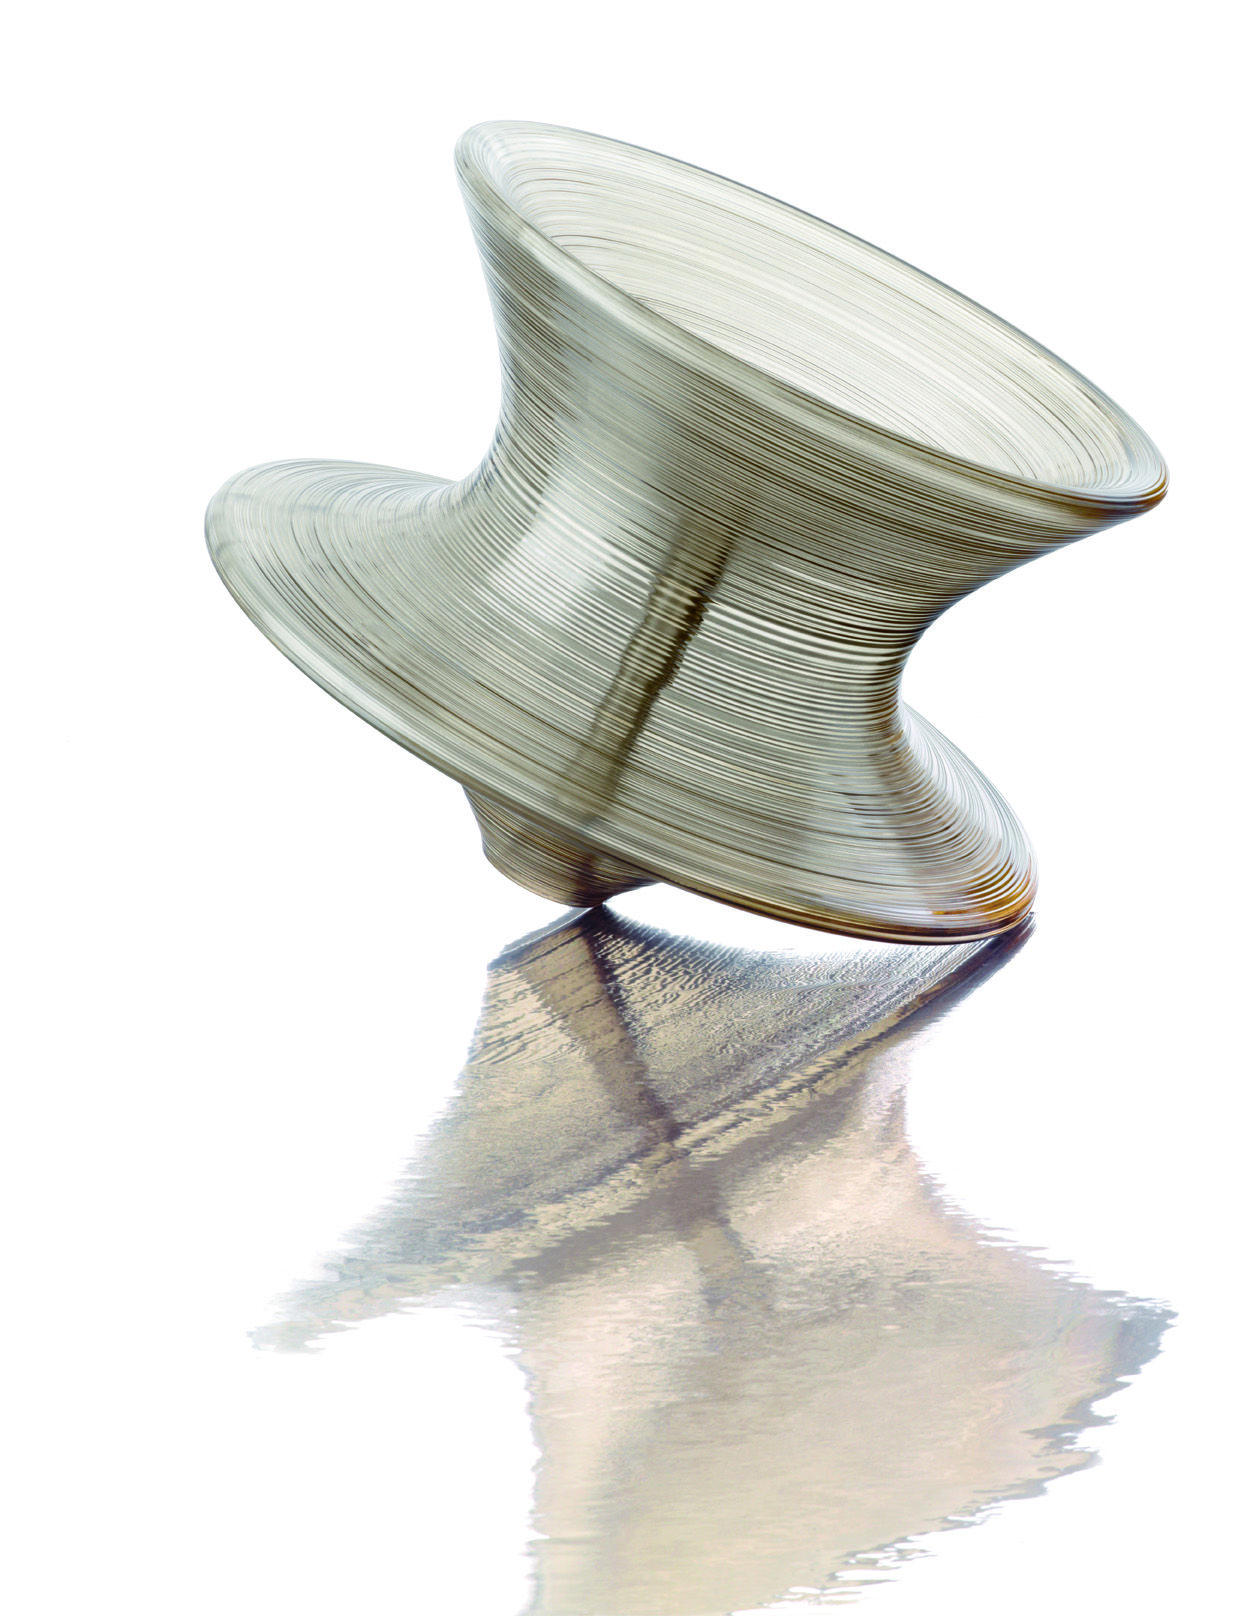 Magis Spun Chair Herman Miller Smoke Polycarbonate